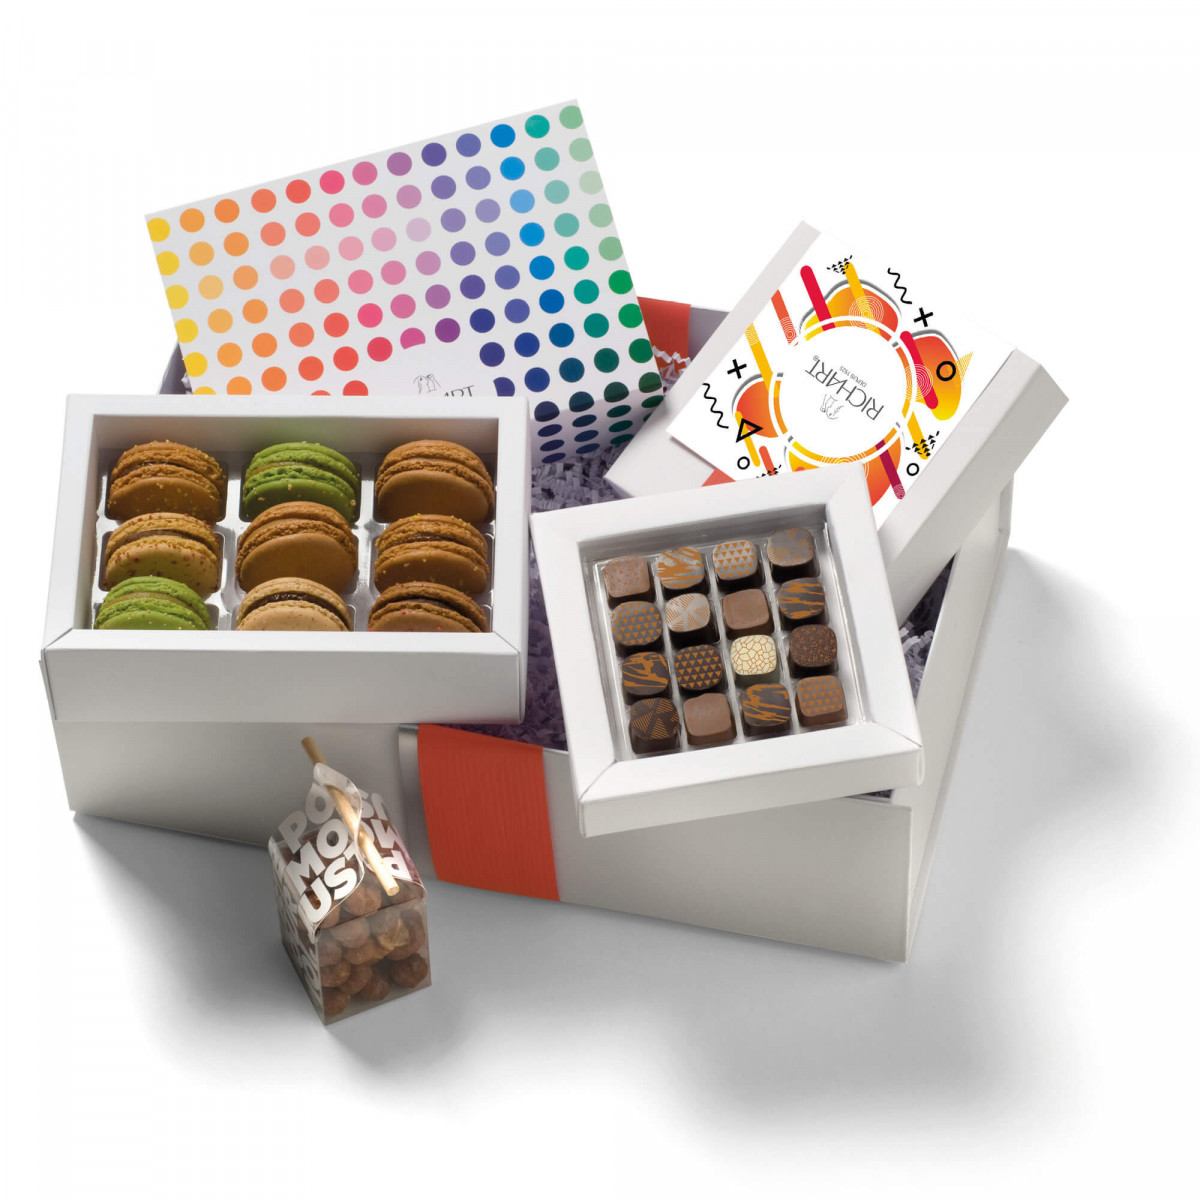 In the kingdom of the Roasted Chocolates and French macarons Gift basket